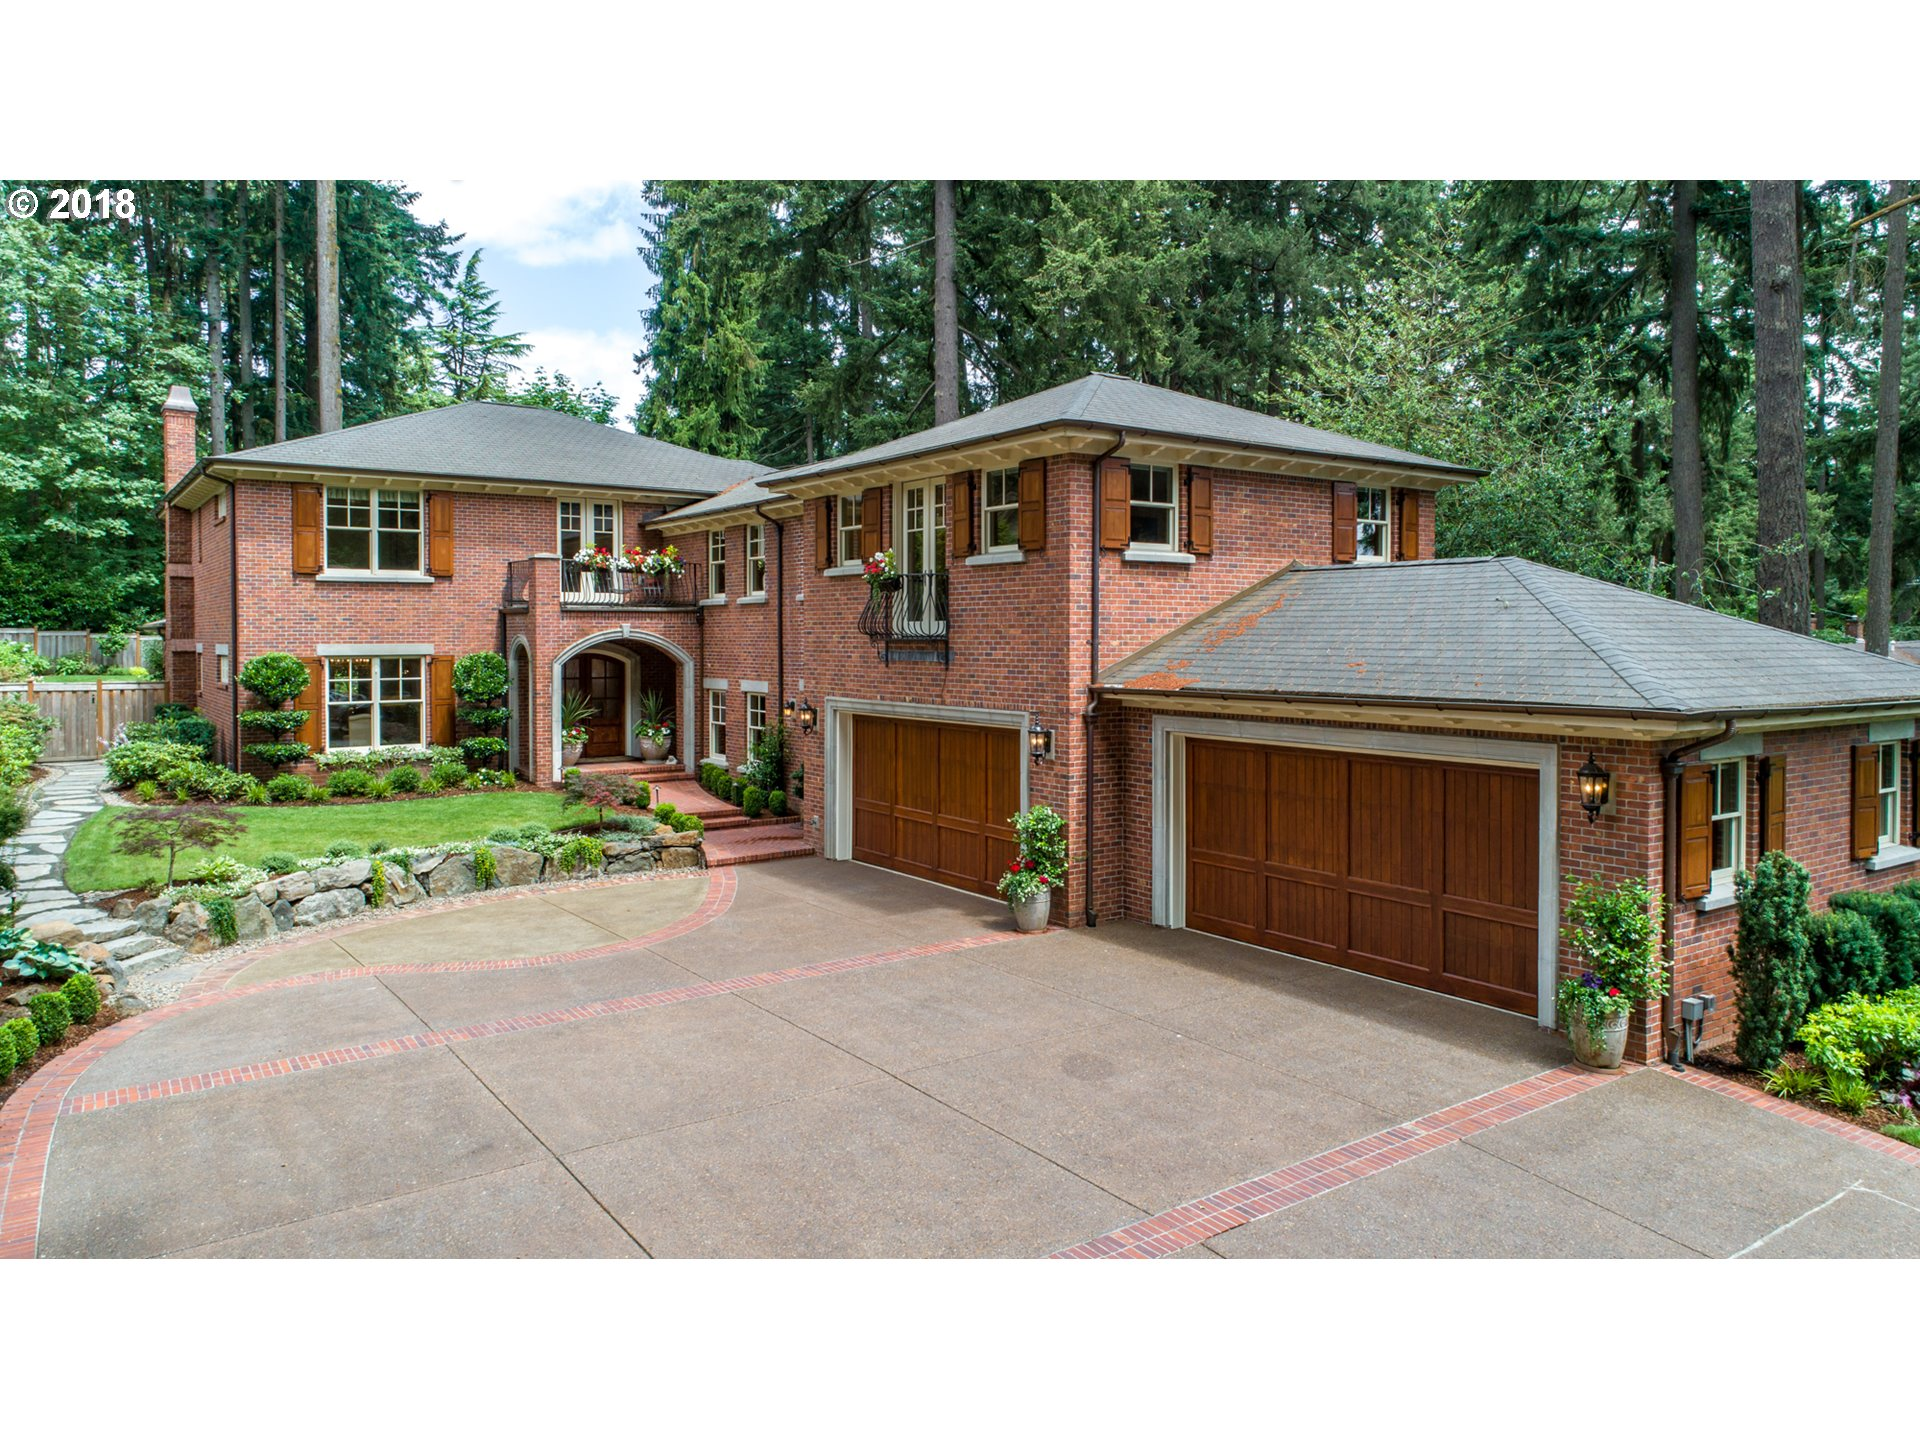 1075 CHANDLER RD, LAKE OSWEGO, OR 97034